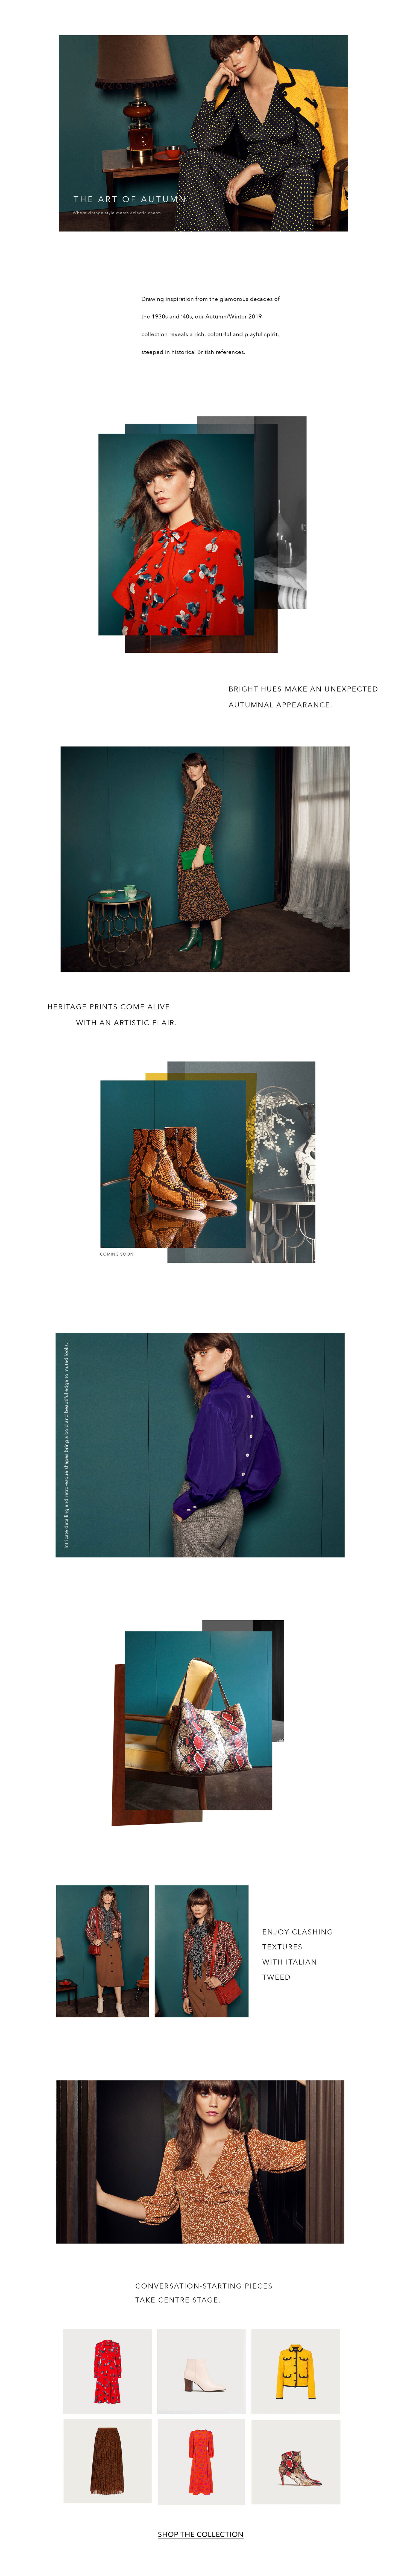 AW19-LOOKBOOK-2.jpg